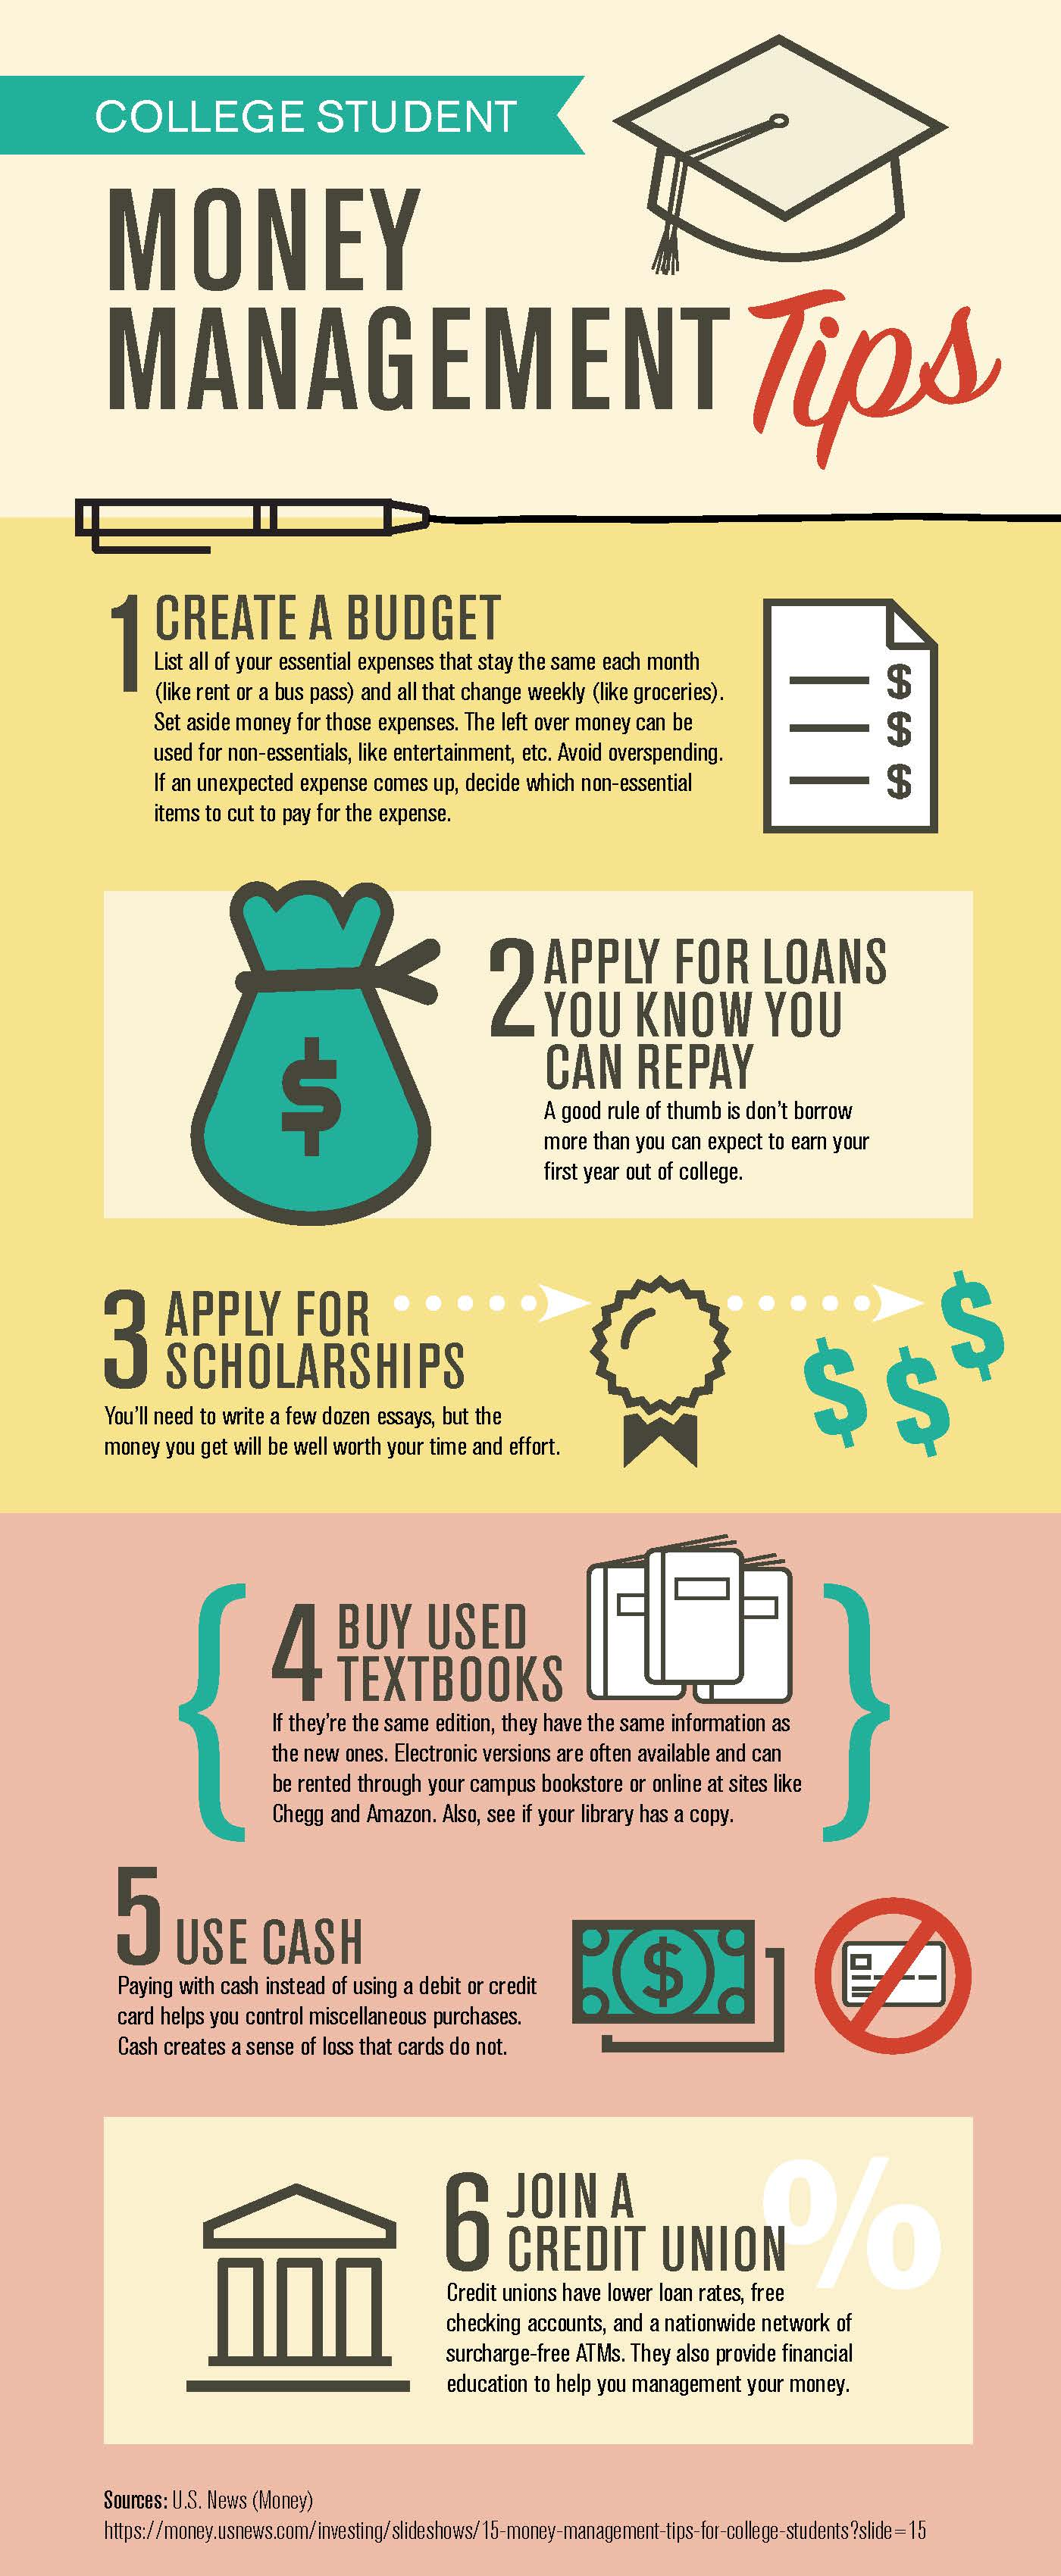 College Money Management Tips Infographic